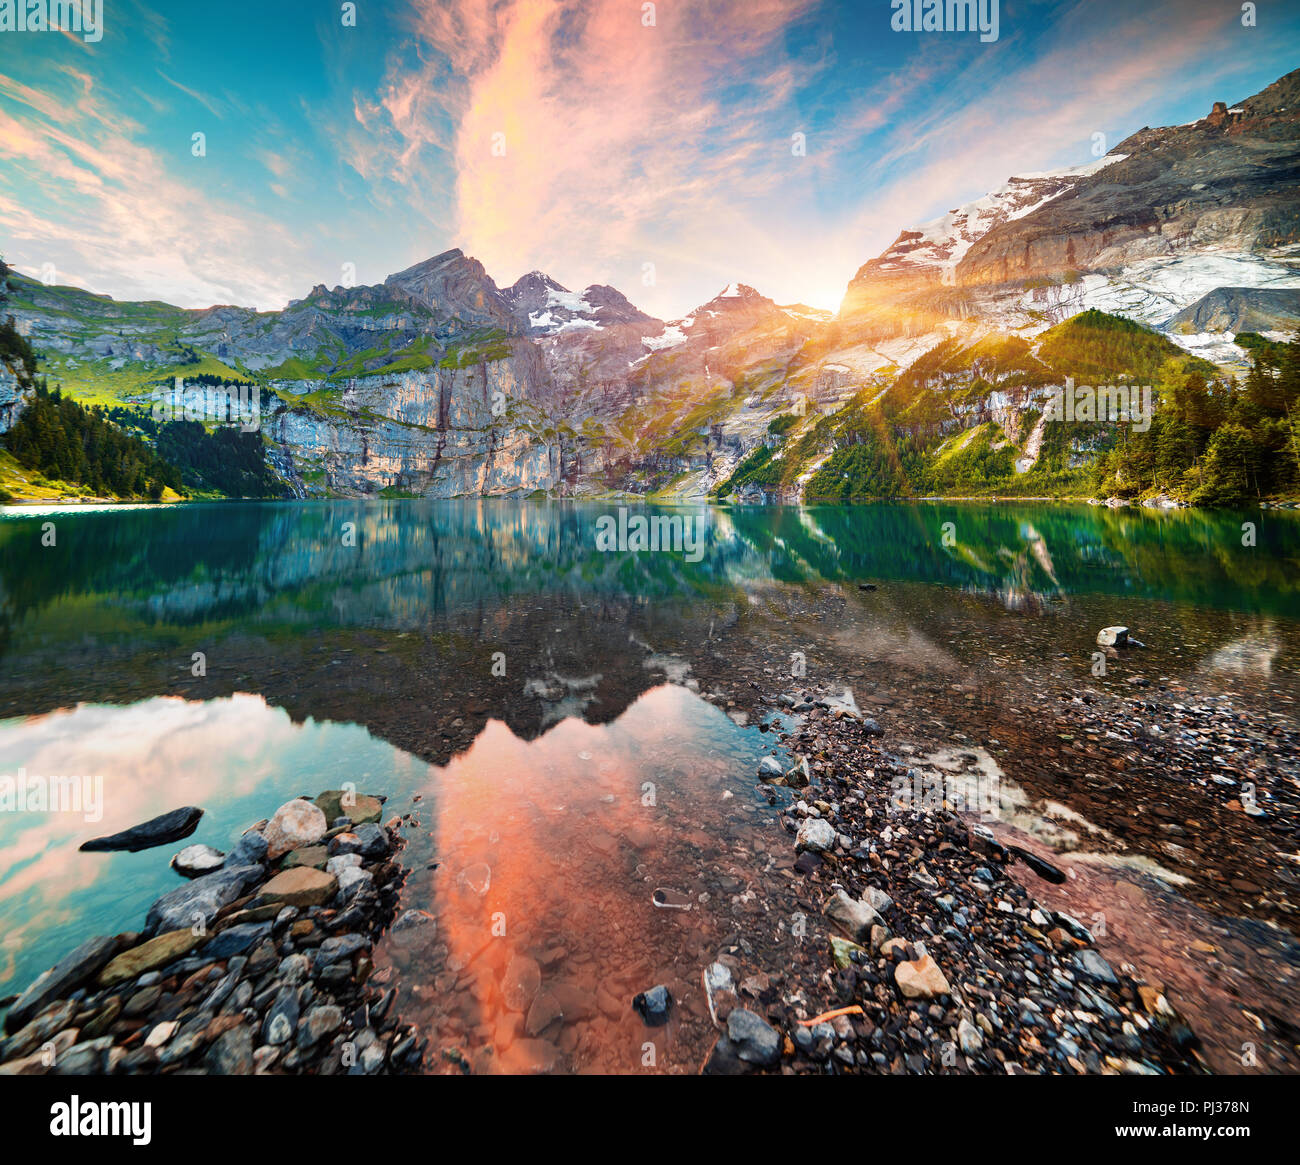 Colorful summer morning on unique lake - Oeschinen (Oeschinensee), UNESCO World Heritage Site. Switzerland, Europe. - Stock Image